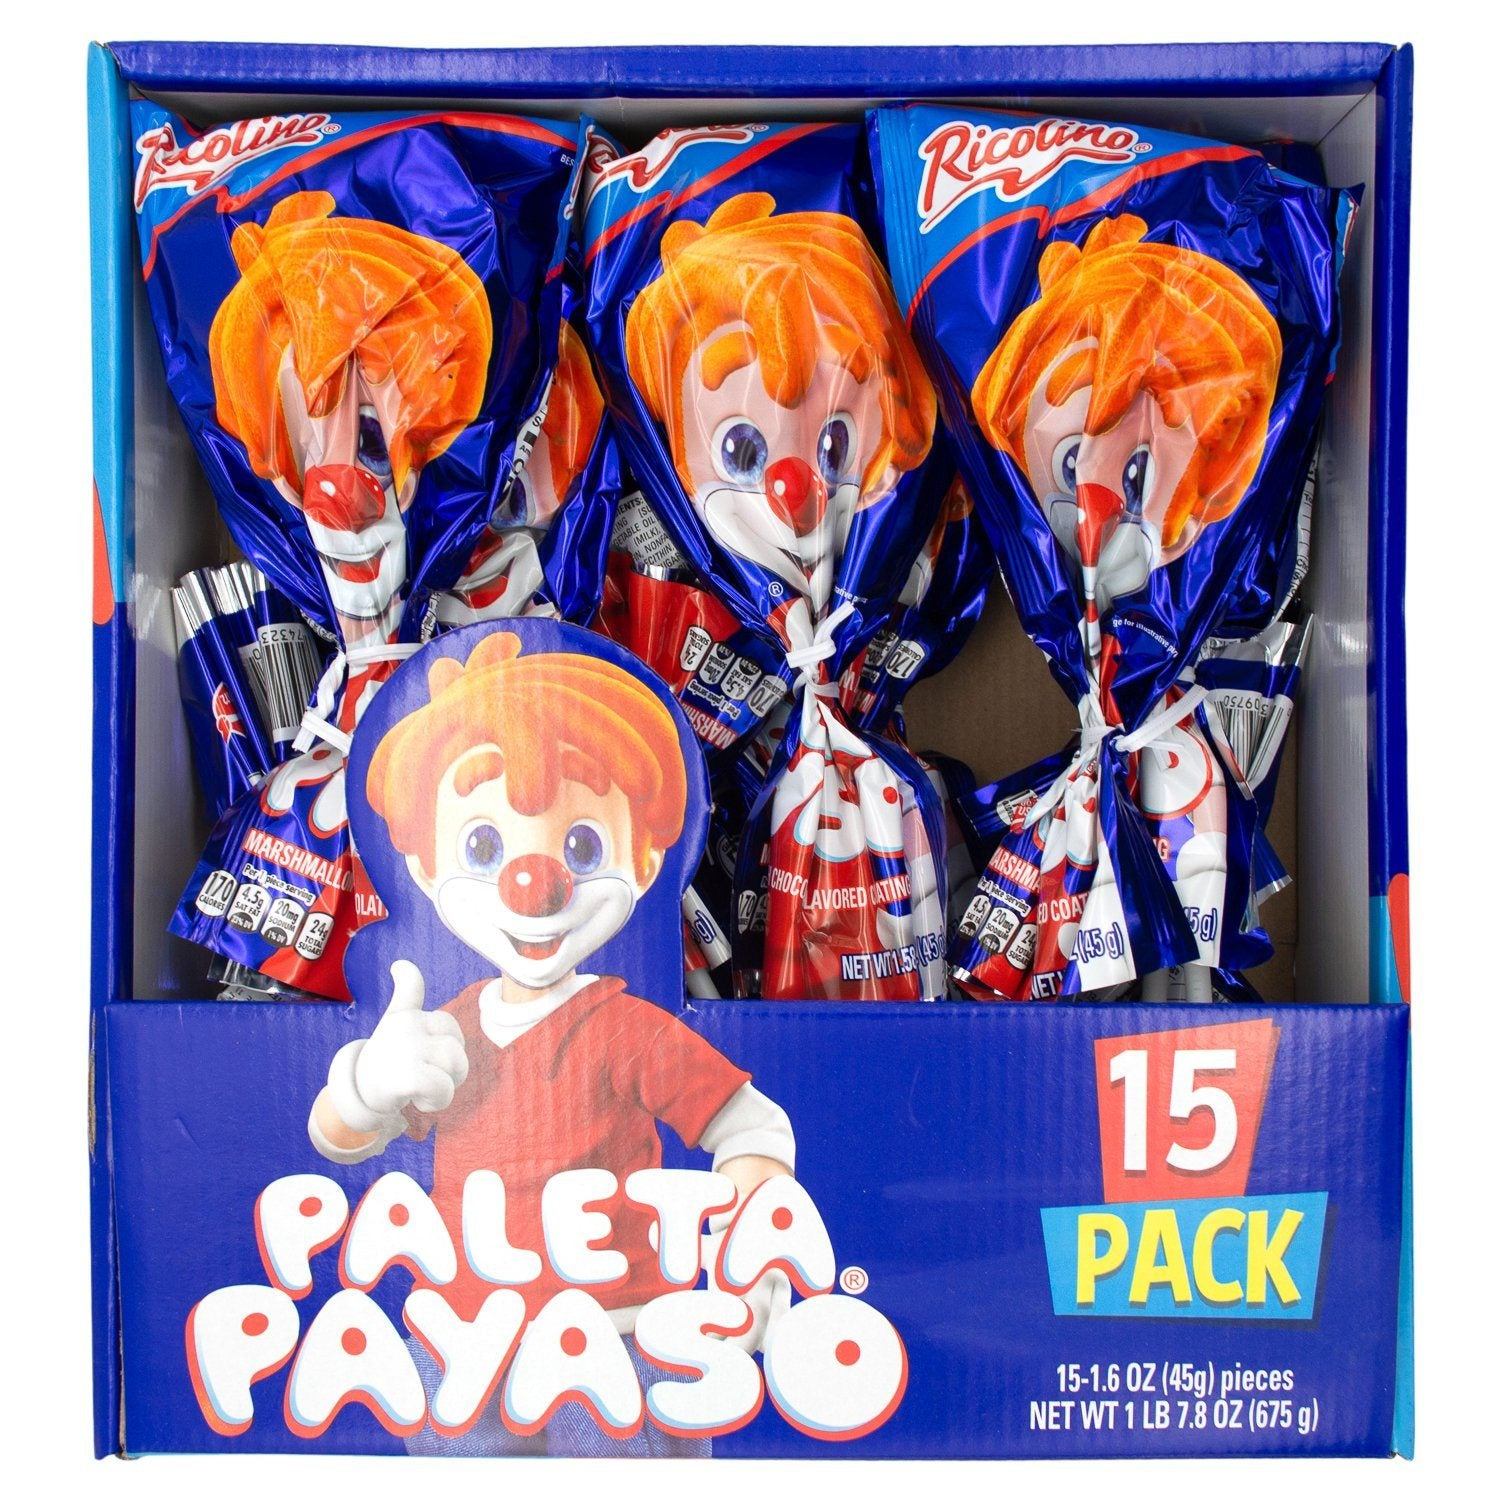 Ricolino Paleta Payaso Marshmallow Lollipop Ricolino 1.58 Oz-15 Count